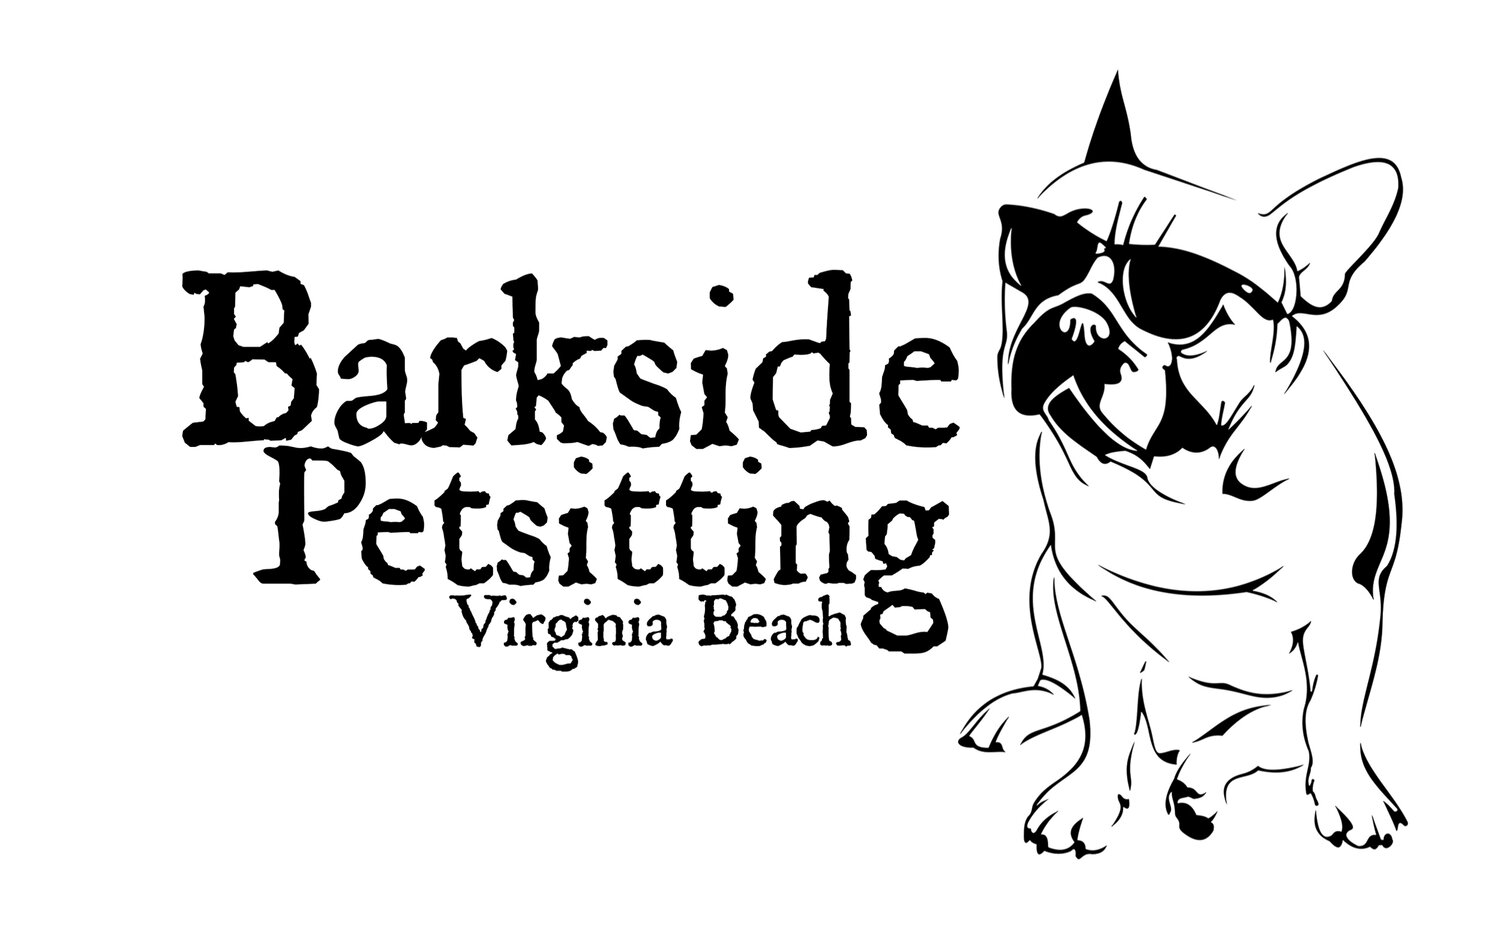 The Barkside